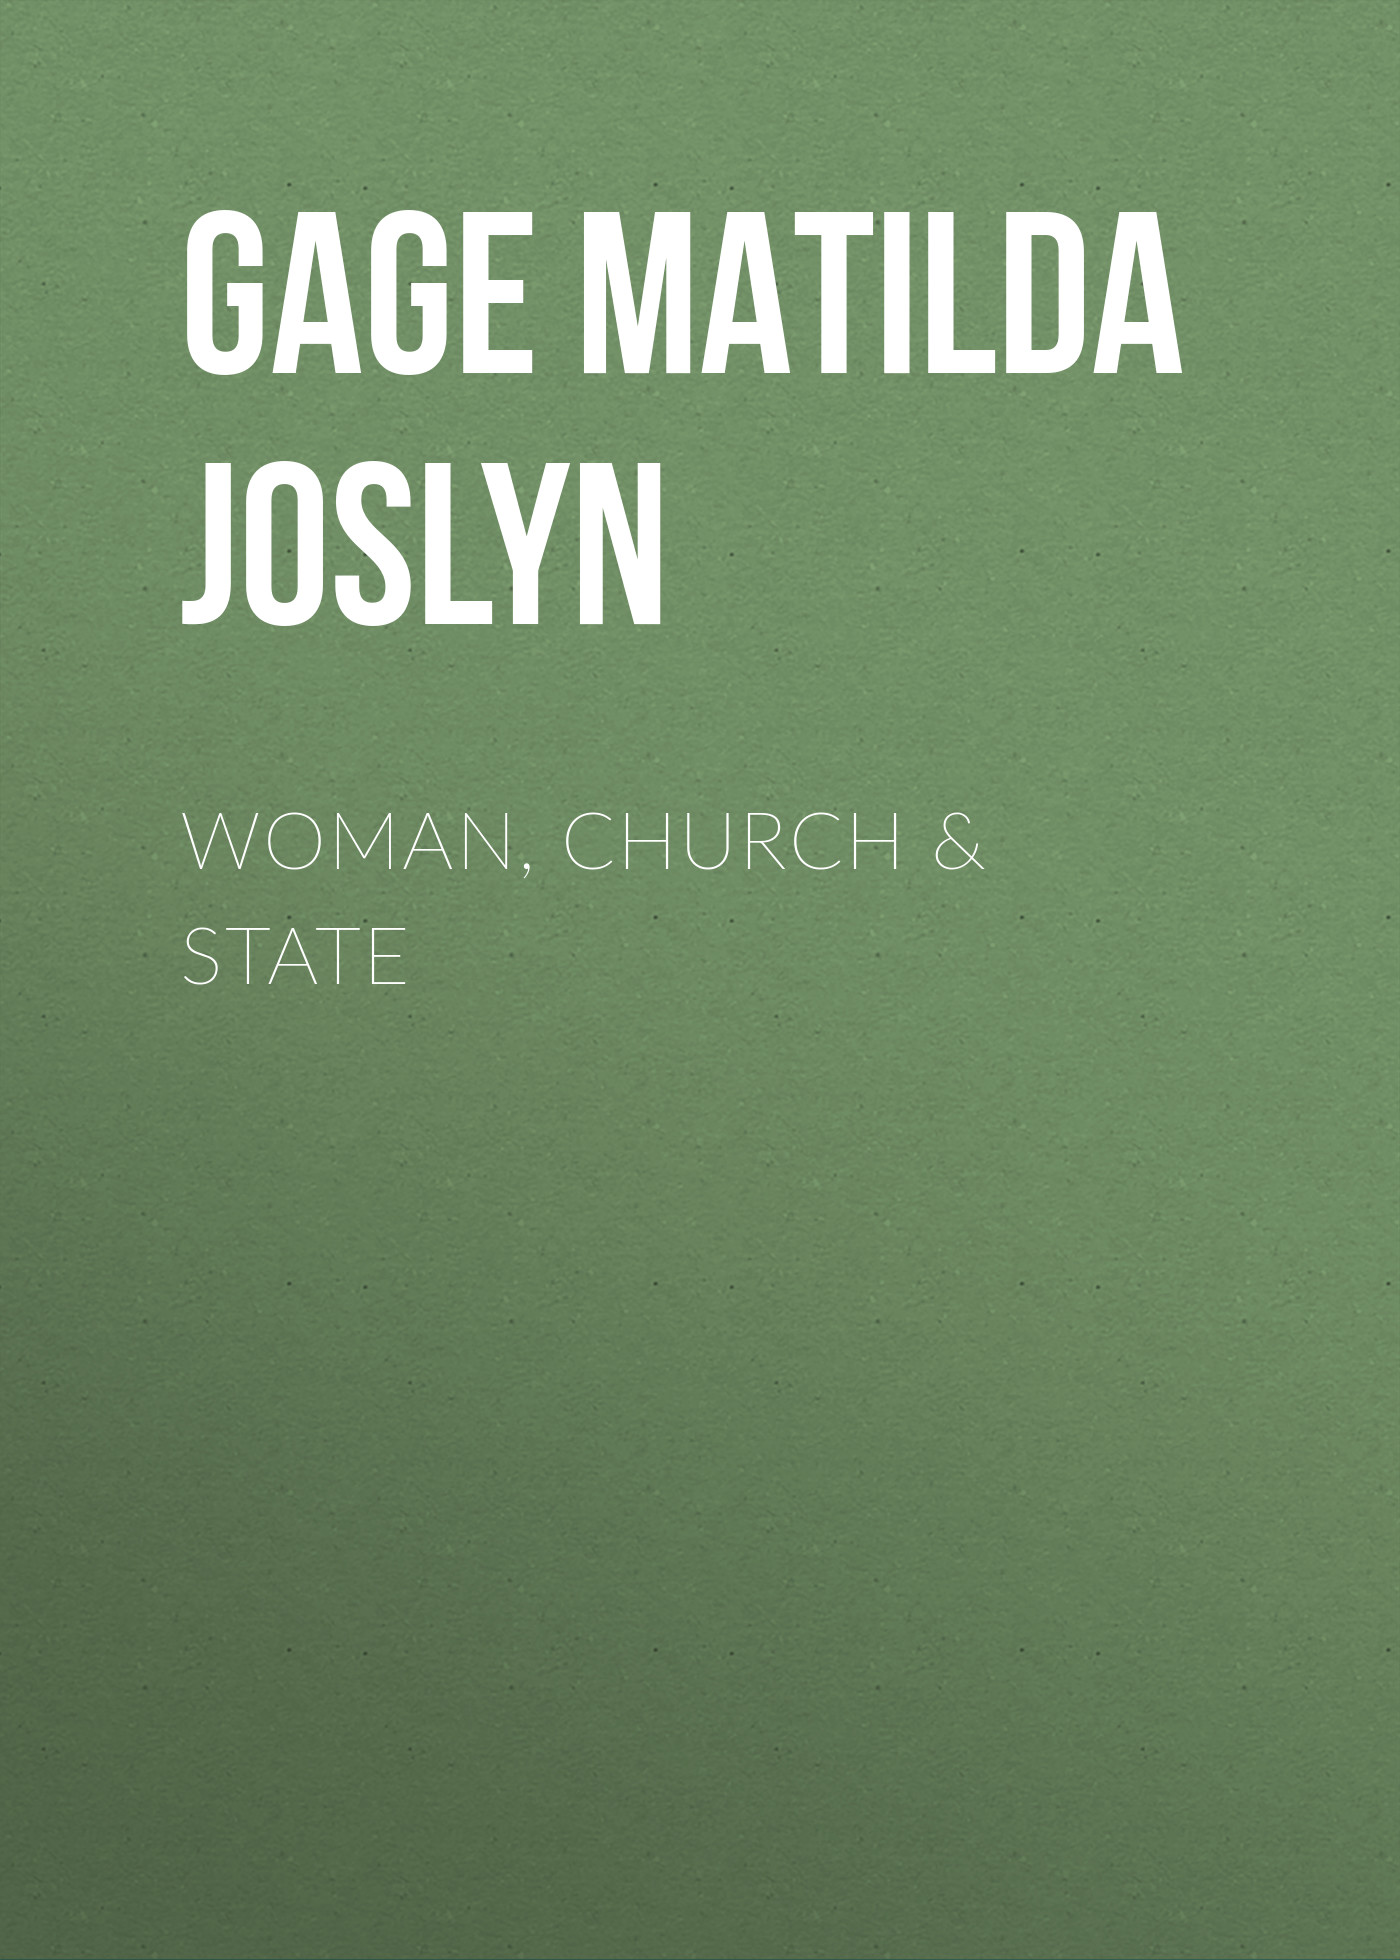 Gage Matilda Joslyn Woman, Church & State